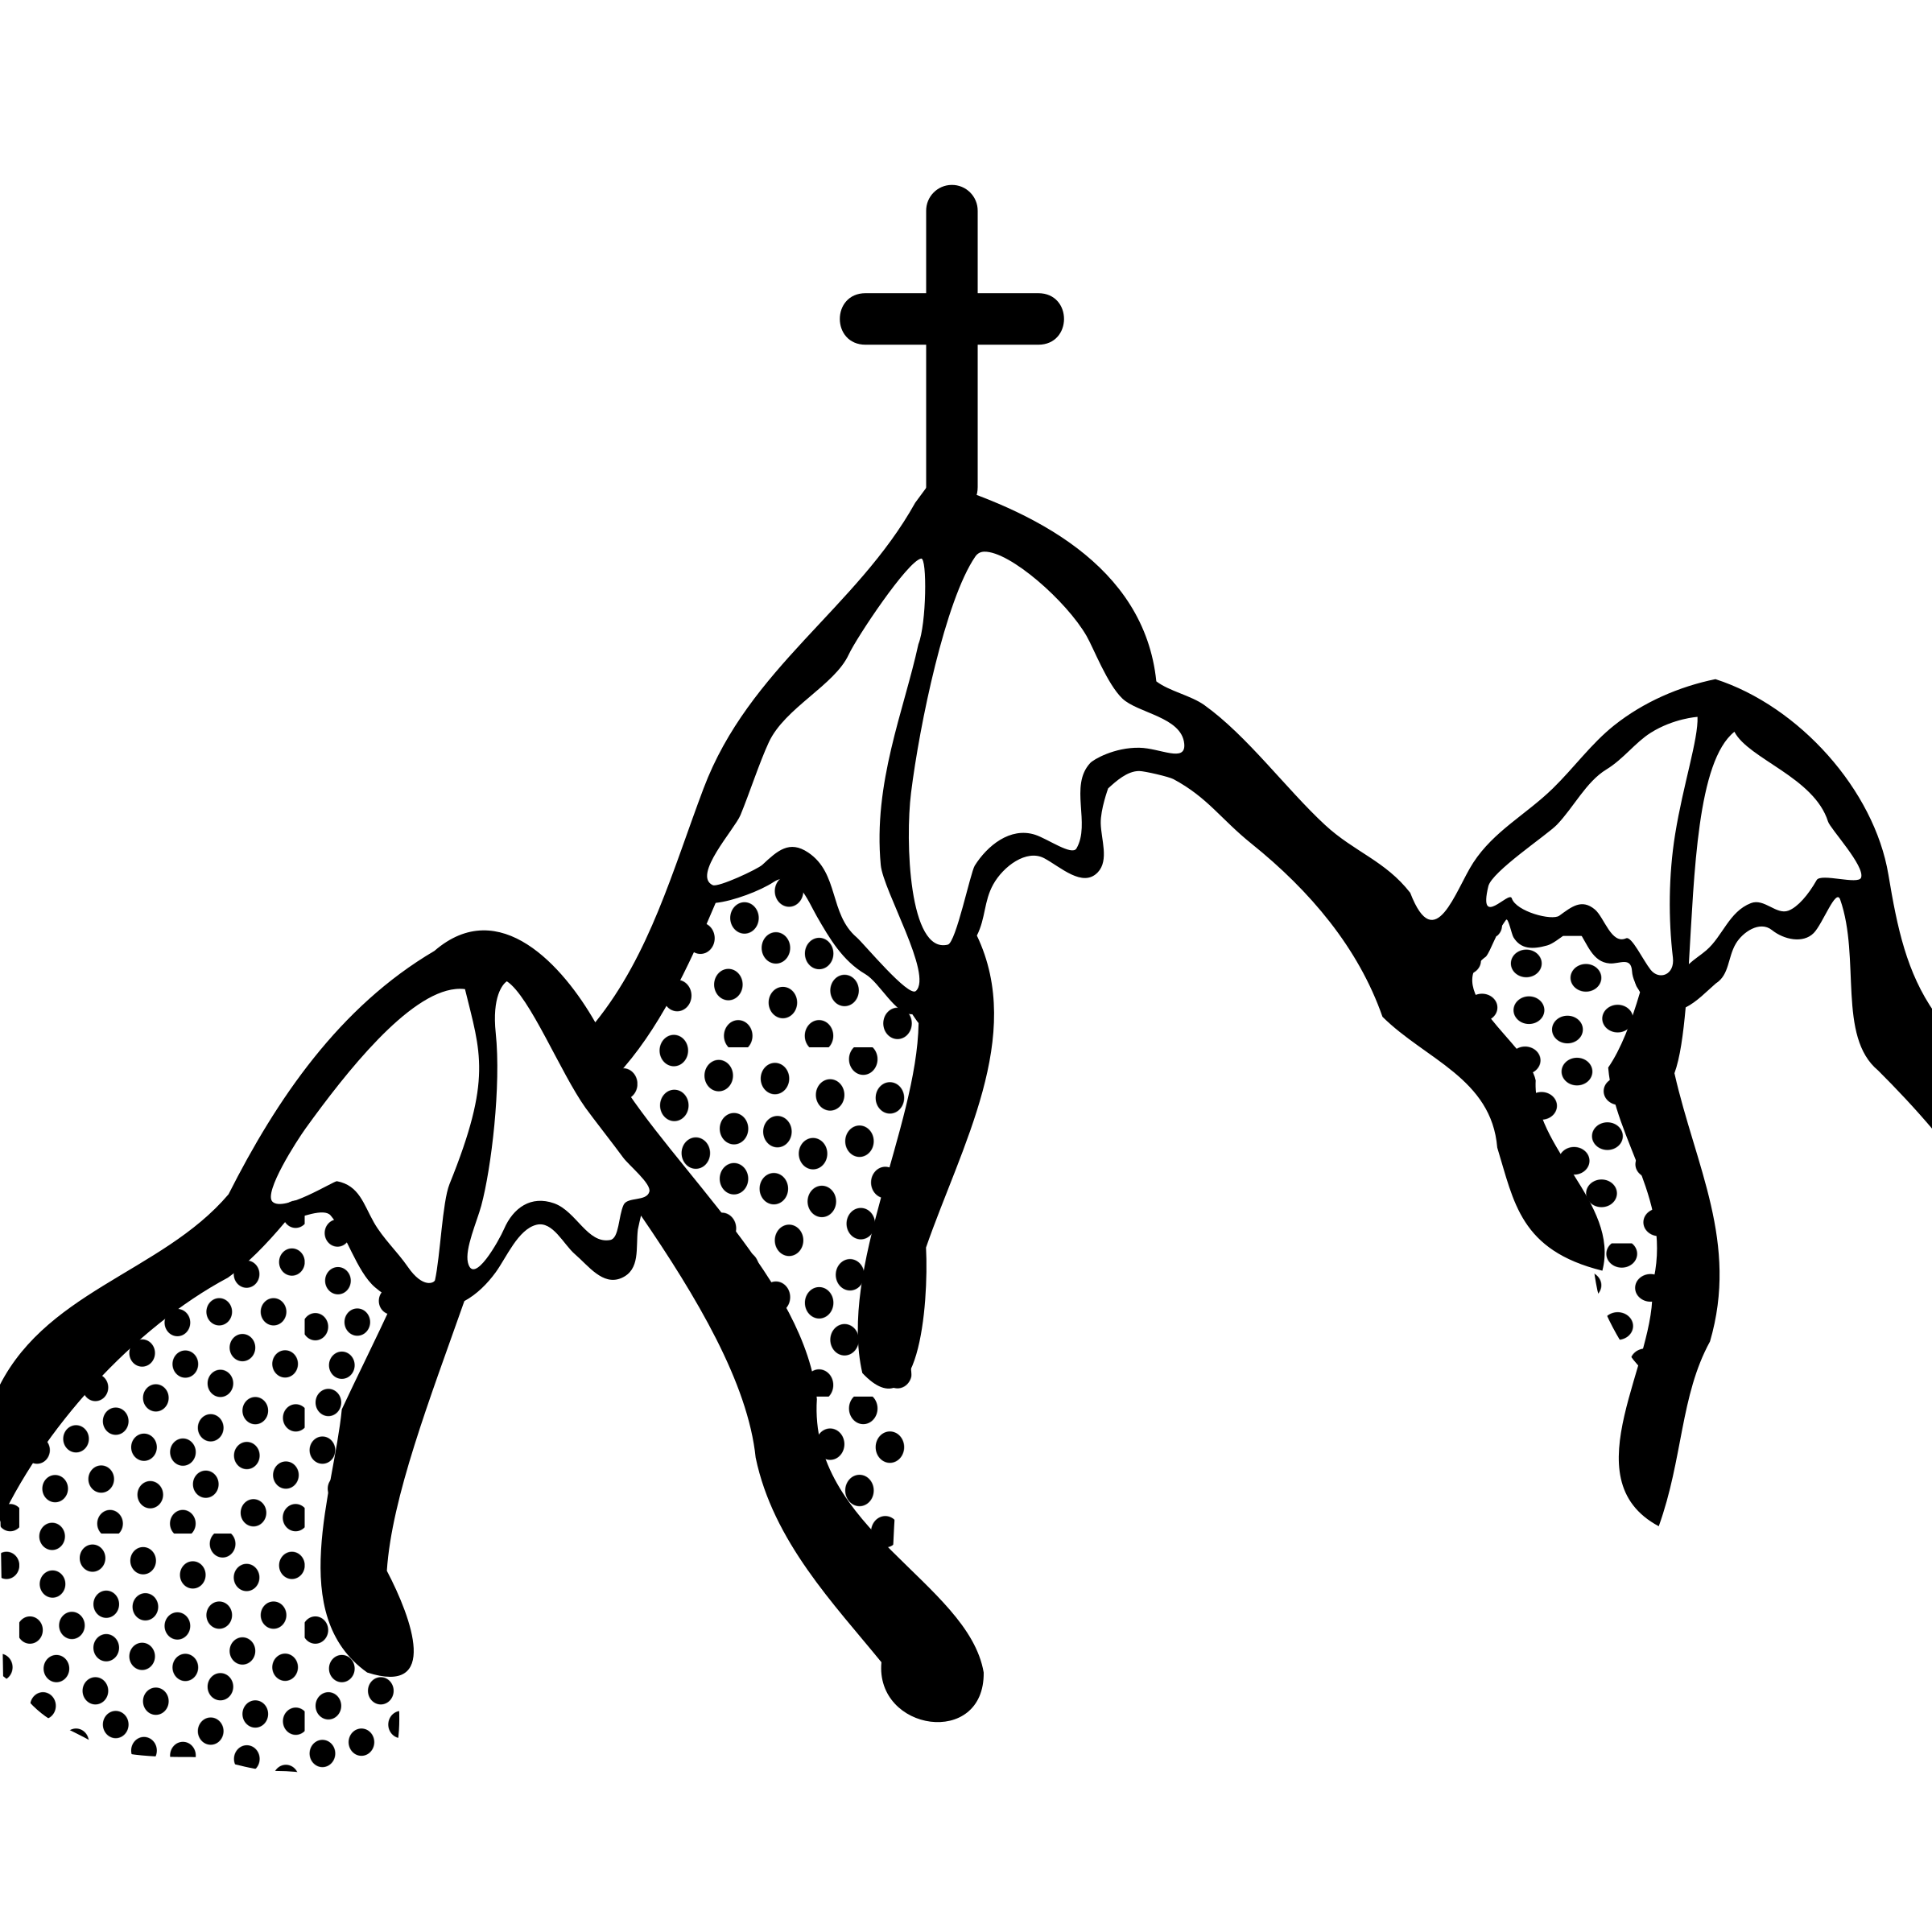 Mountains lineart big image. Mountain clipart drawing